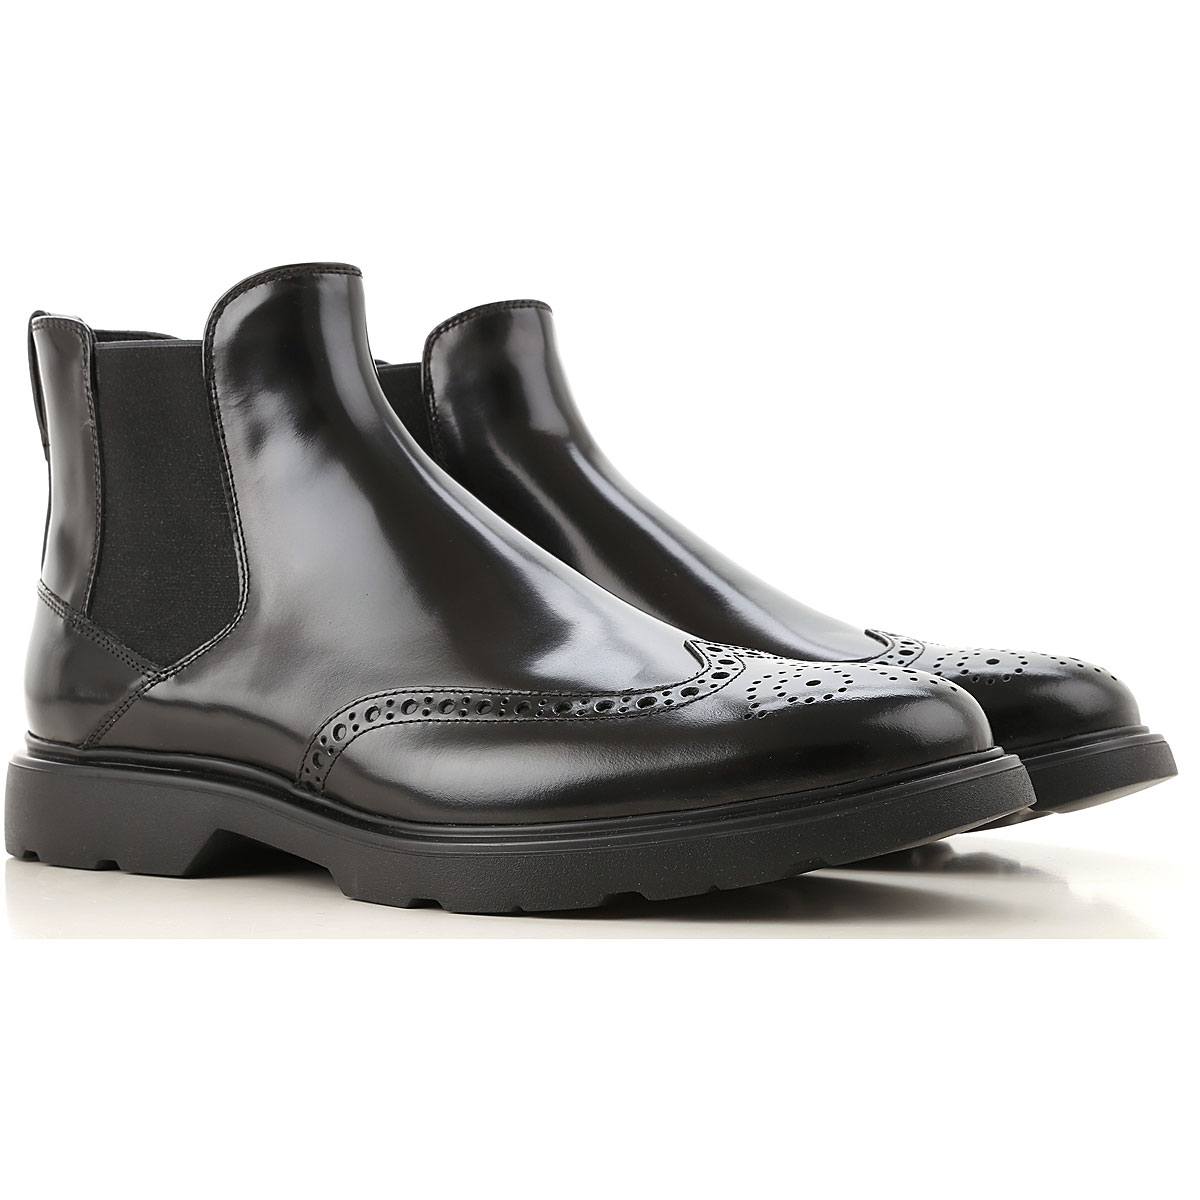 Hogan Chelsea Boots for Men On Sale, Black, Leather, 2019, 10 10.5 11 6 7 8.5 9 9.5